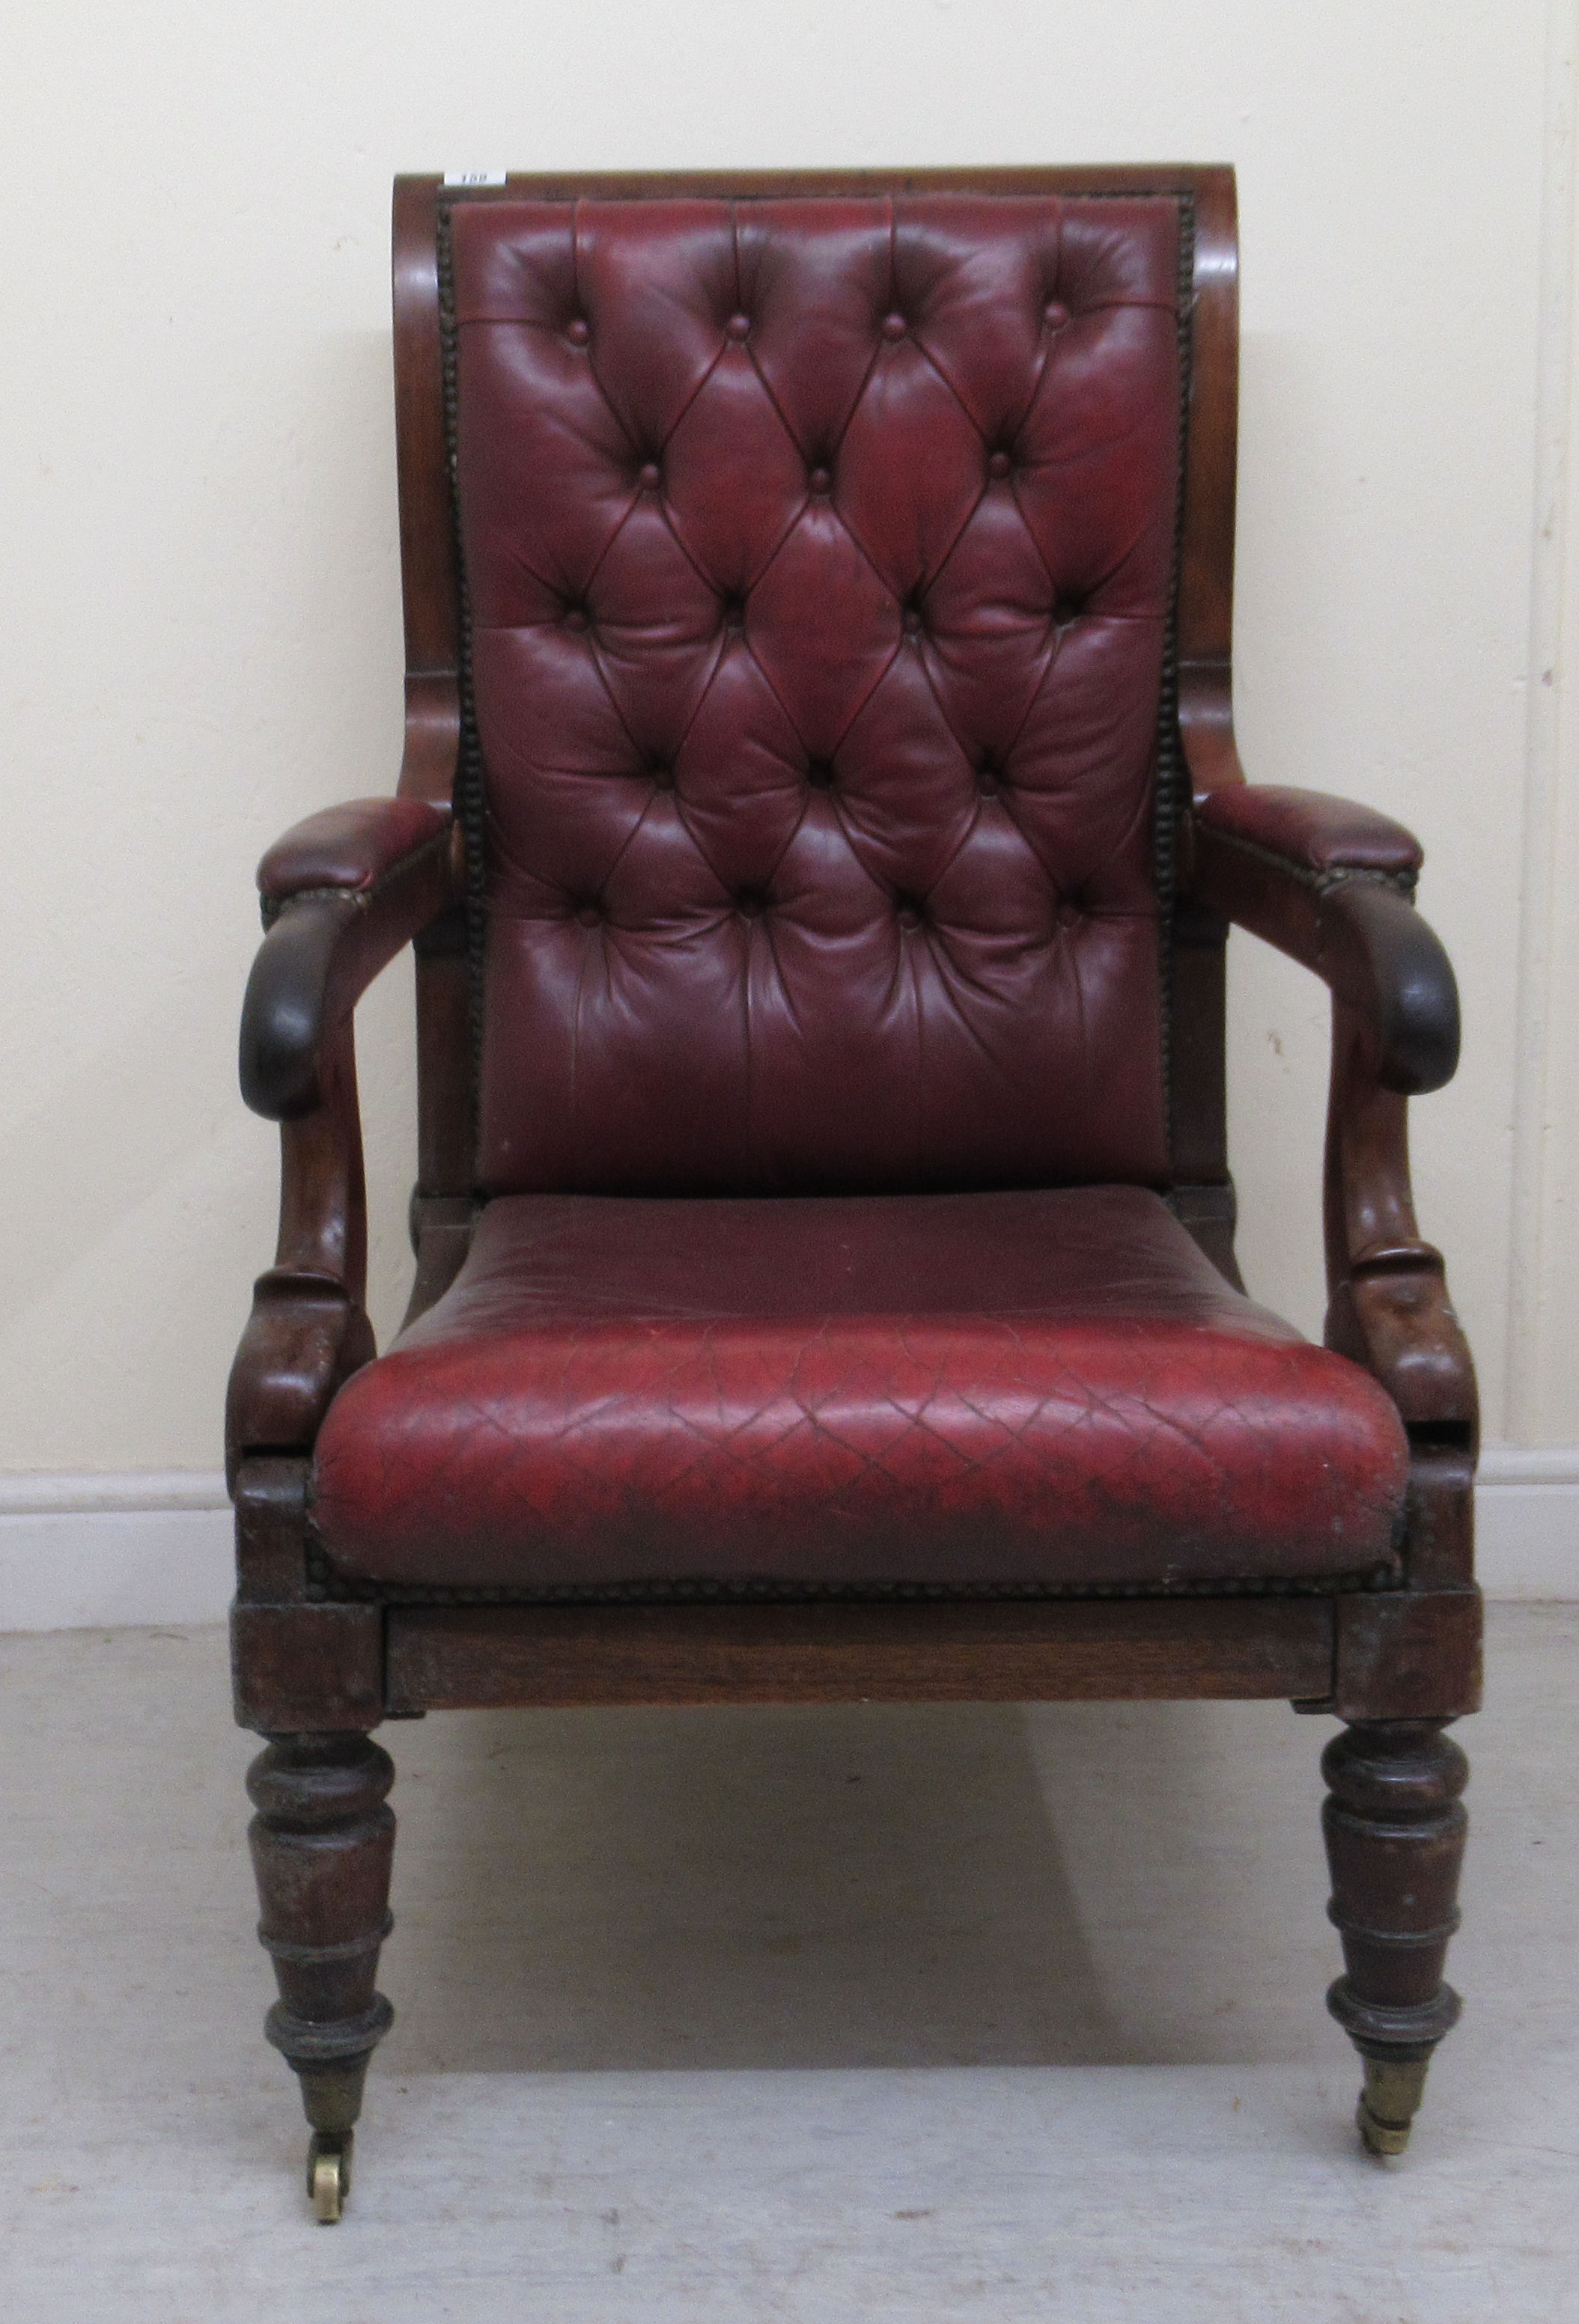 A William IV mahogany framed reclining library chair, the Daws Patent action having a height - Image 2 of 12